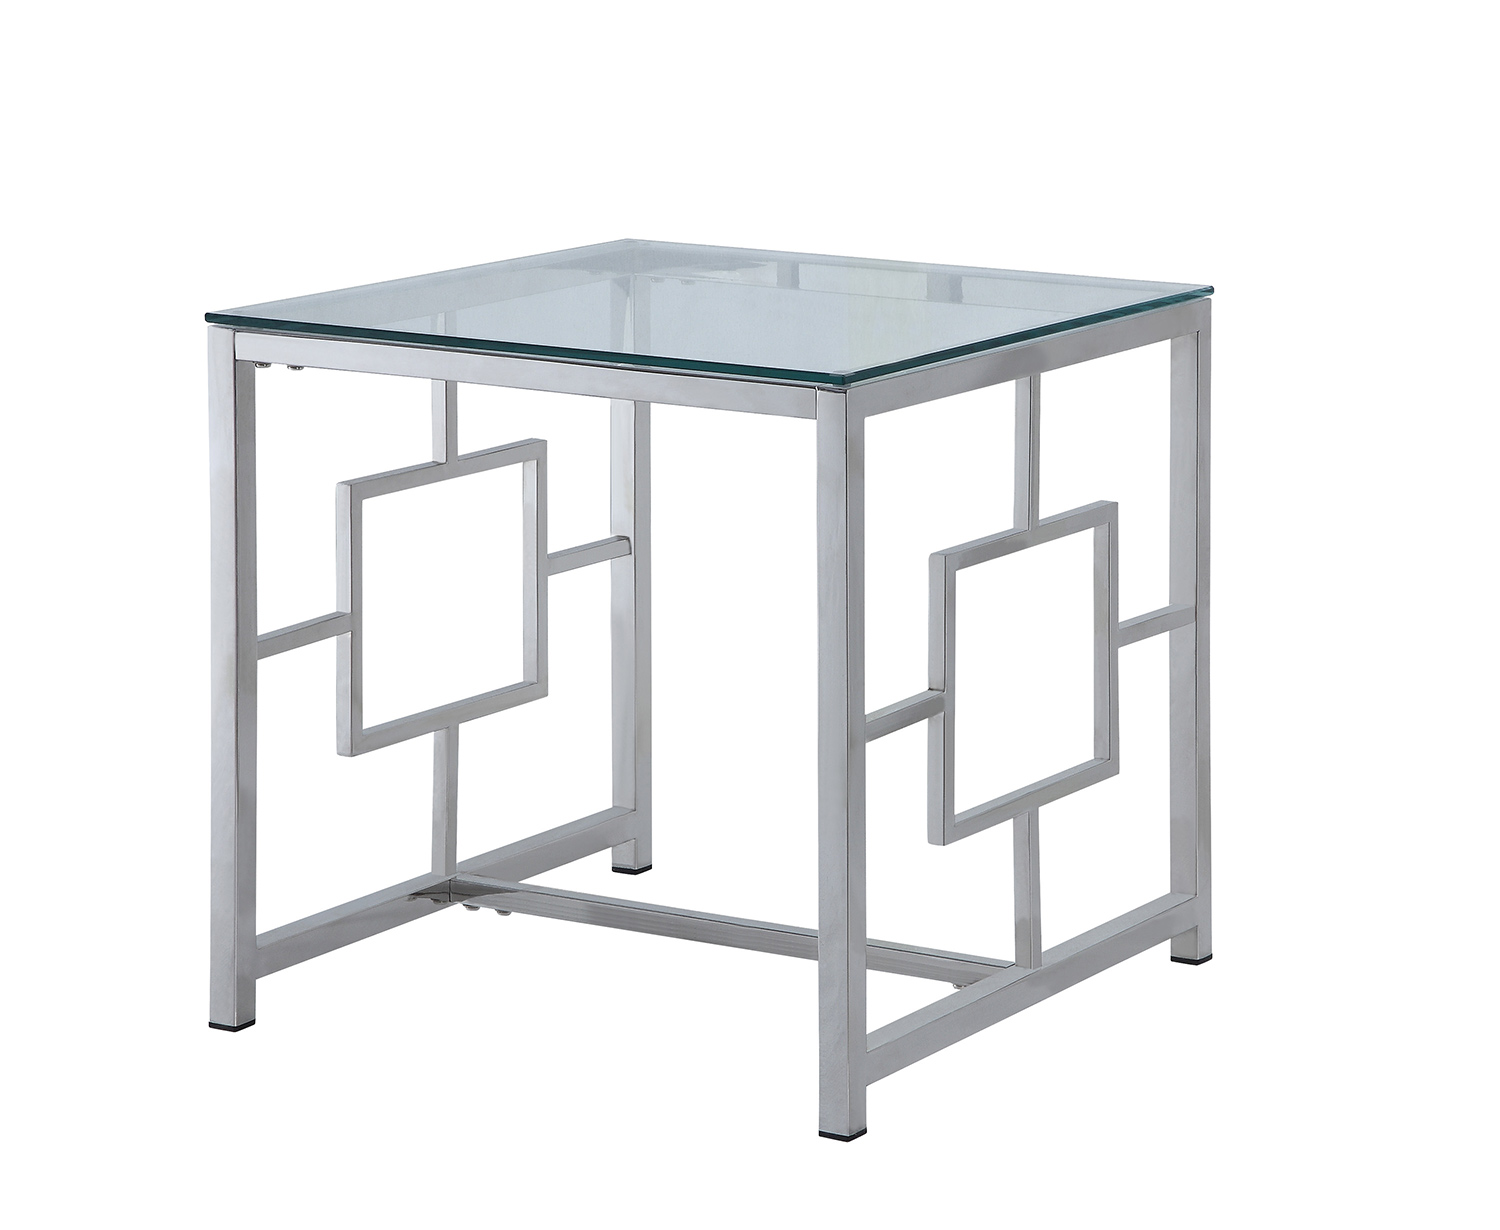 Homelegance Yesenia End Table with Glass Top - Chrome